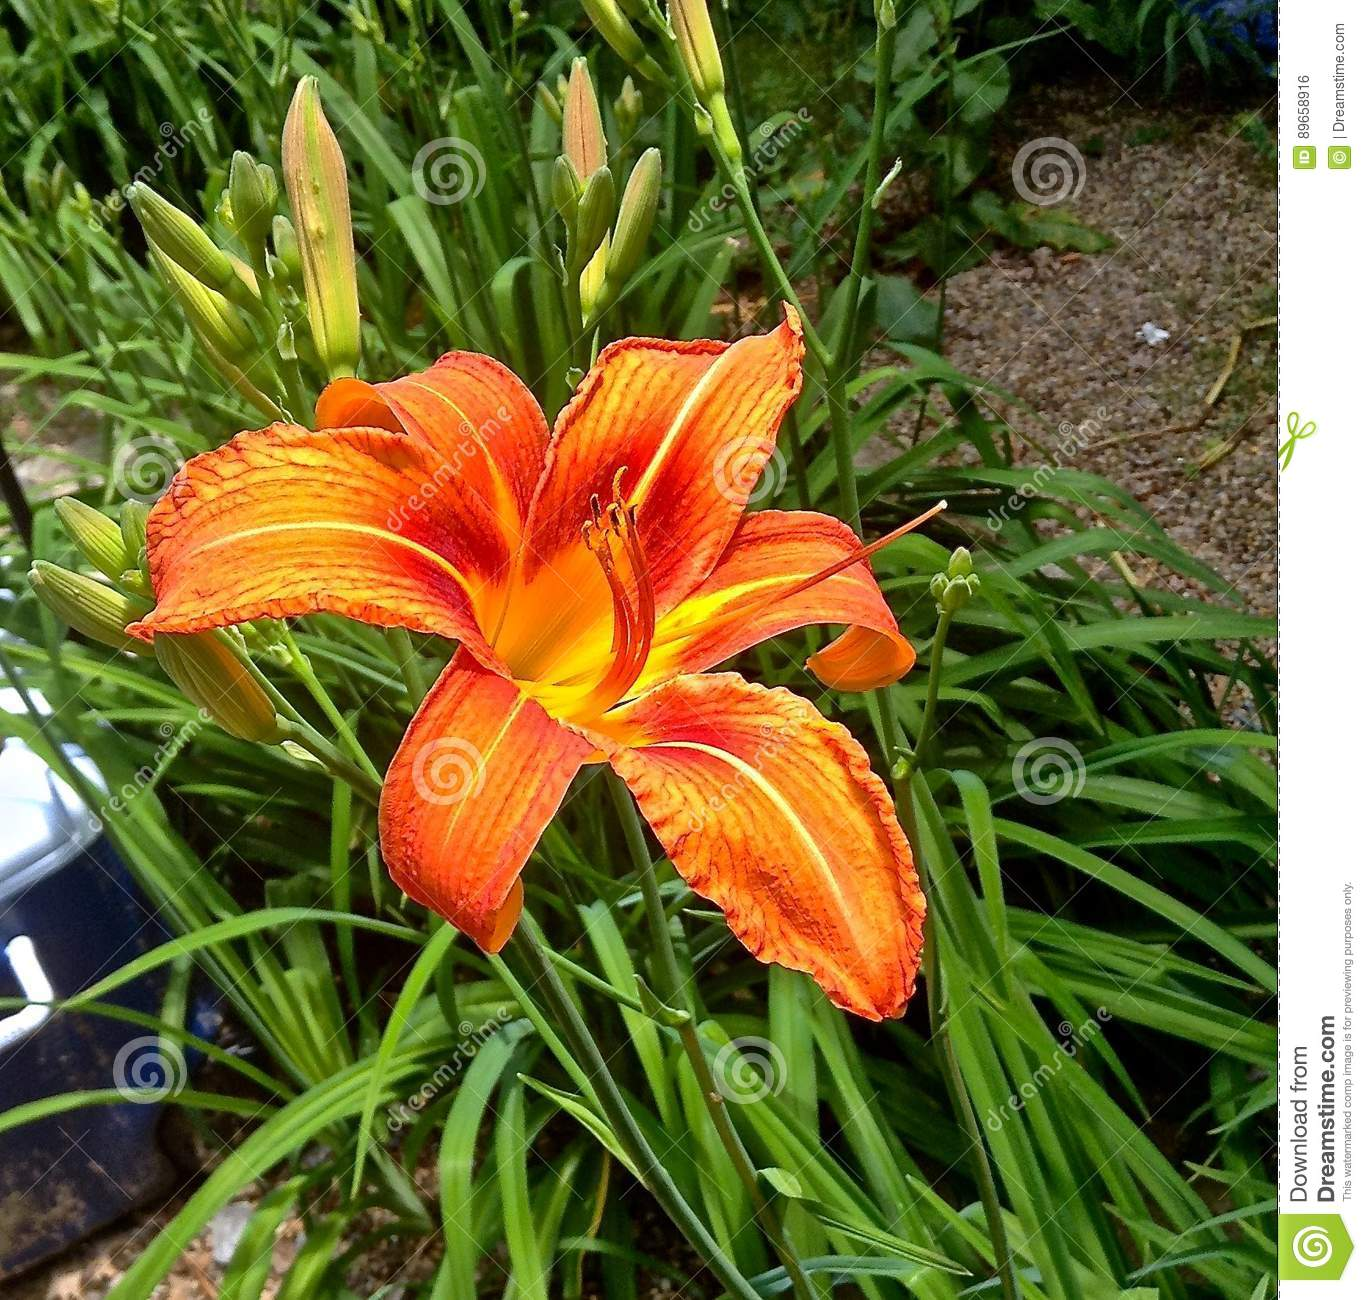 Dragon Lily Flower Stock Photos Royalty Free Pictures